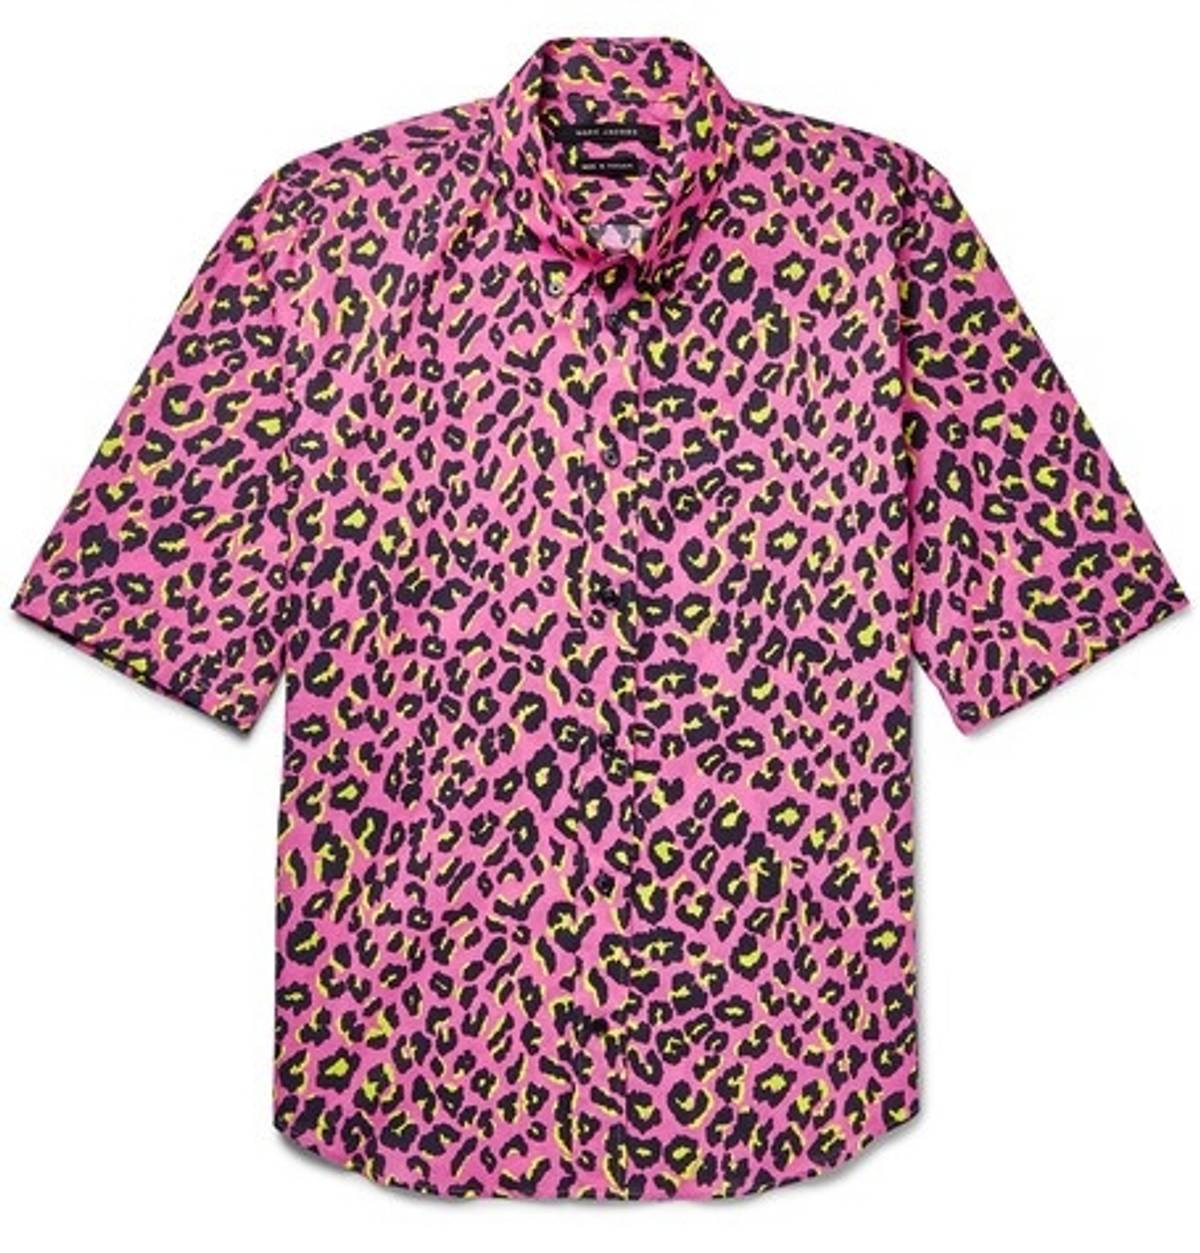 Marc Jacobs Collection Pink Leopard Print Shirt Size S Shirts